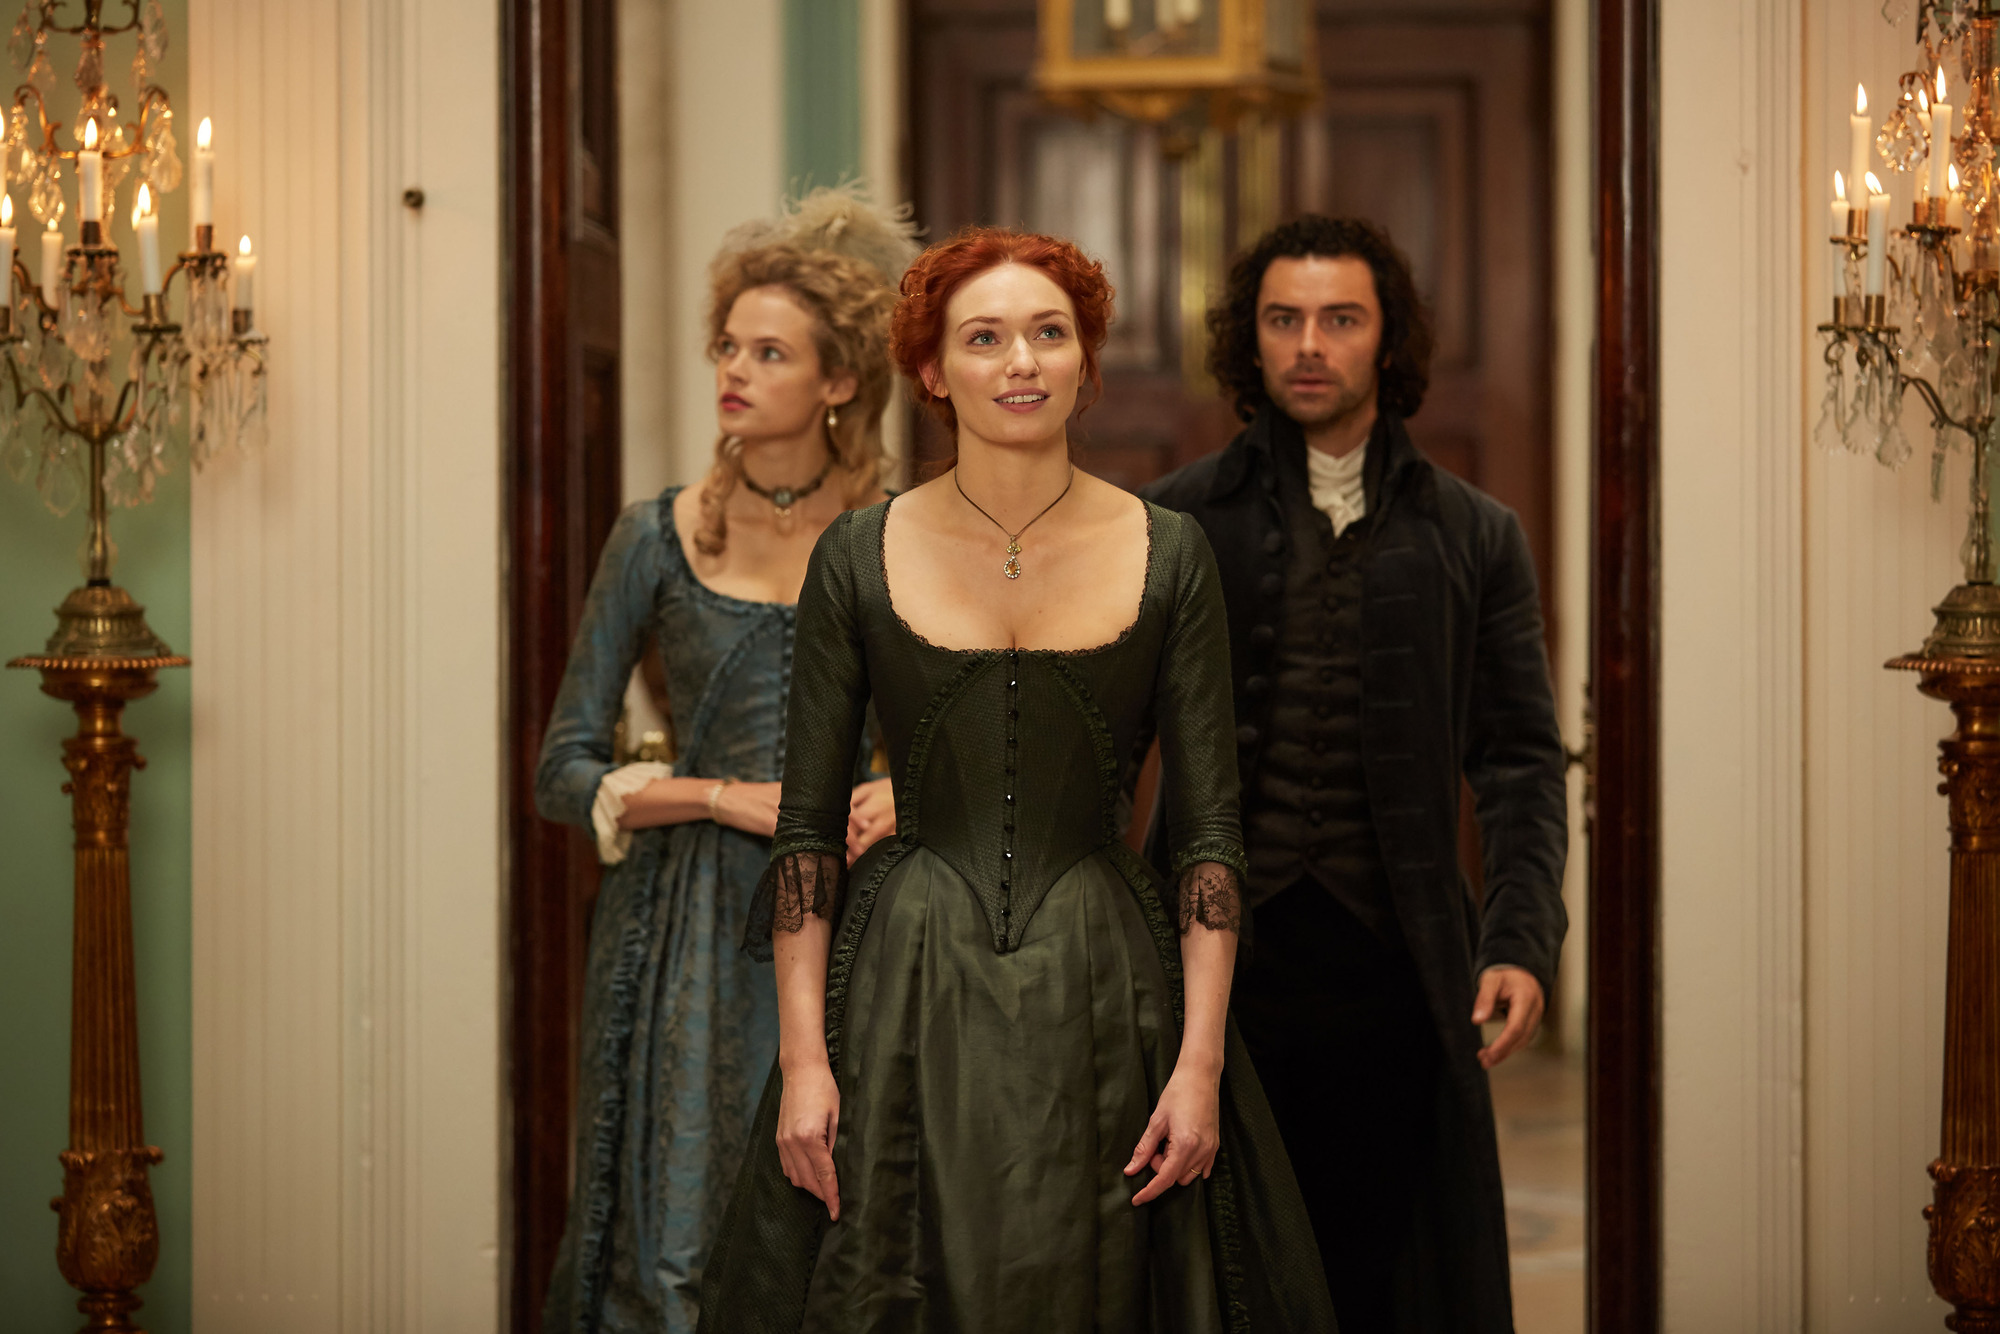 Poldark series 3 episode 2